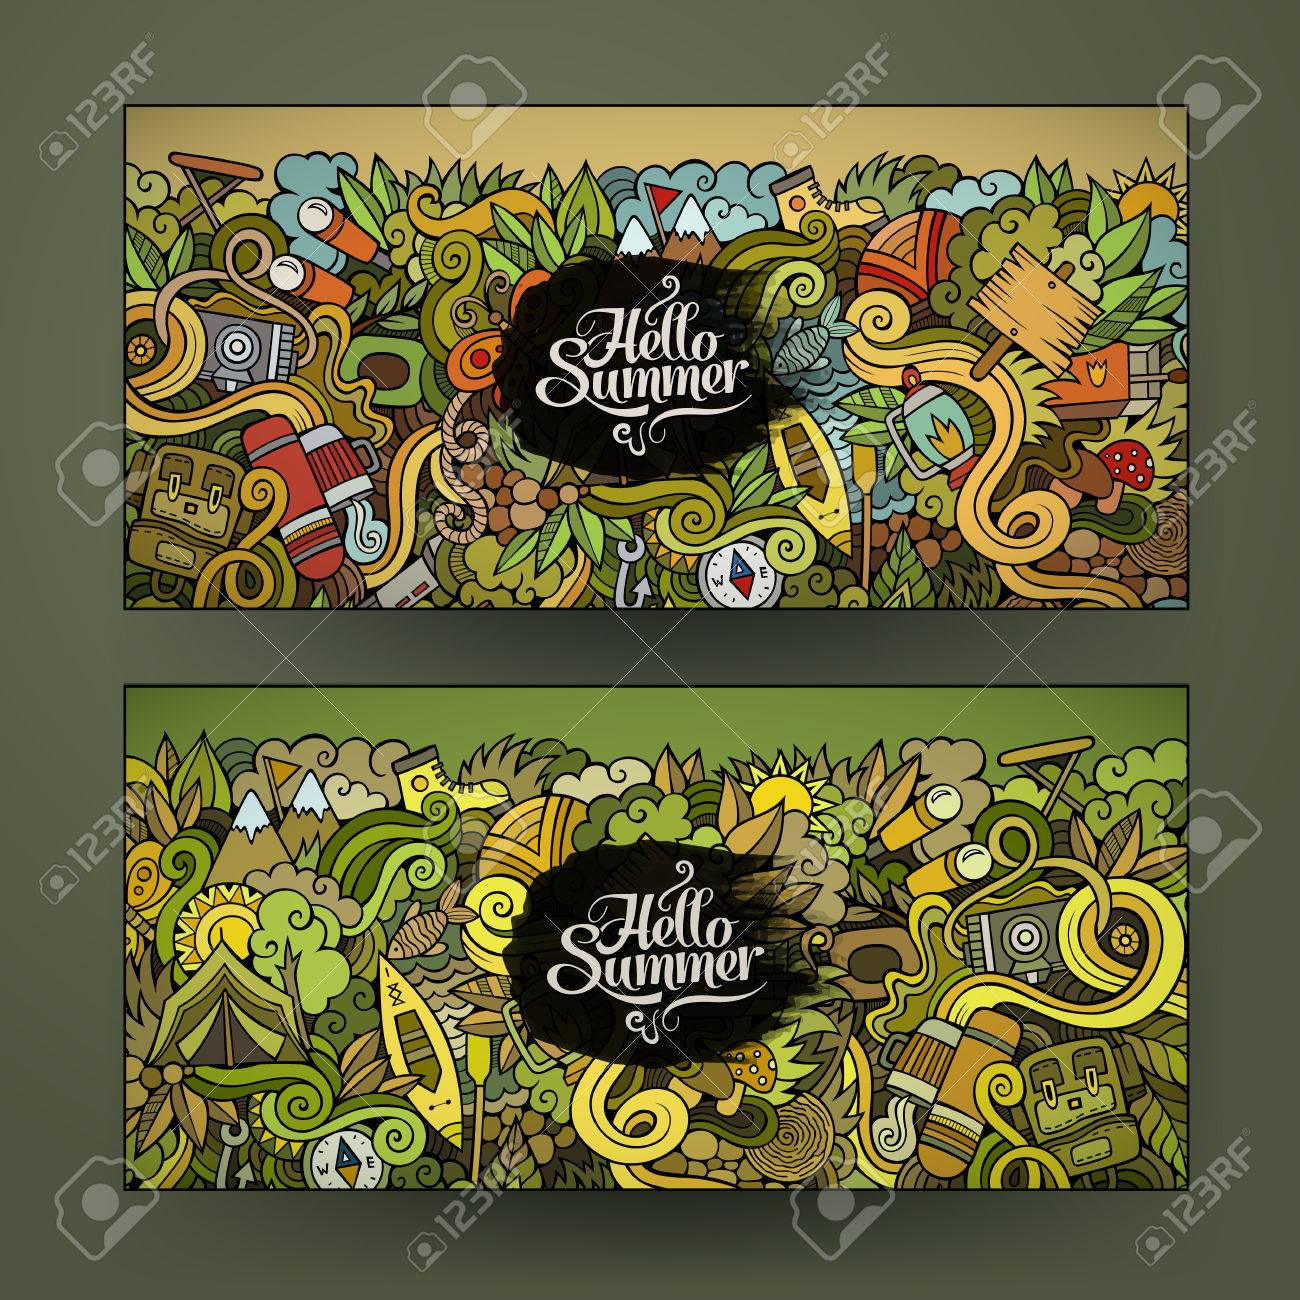 Vector banner templates set with doodles camping theme - 41825385